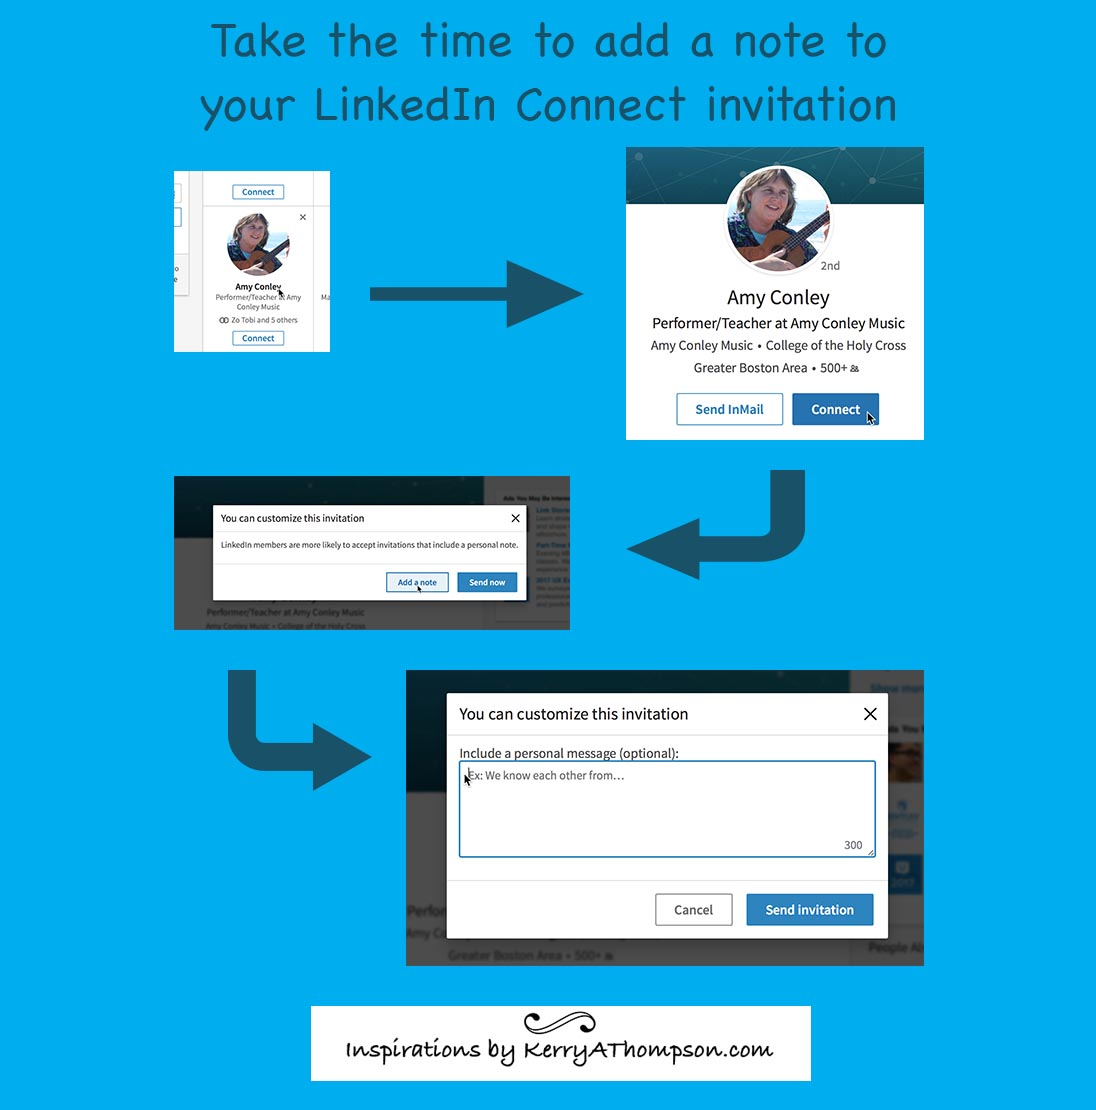 KerryAThompson.com Blog: Take the time to add a note to your LinkedIn Connect invitation